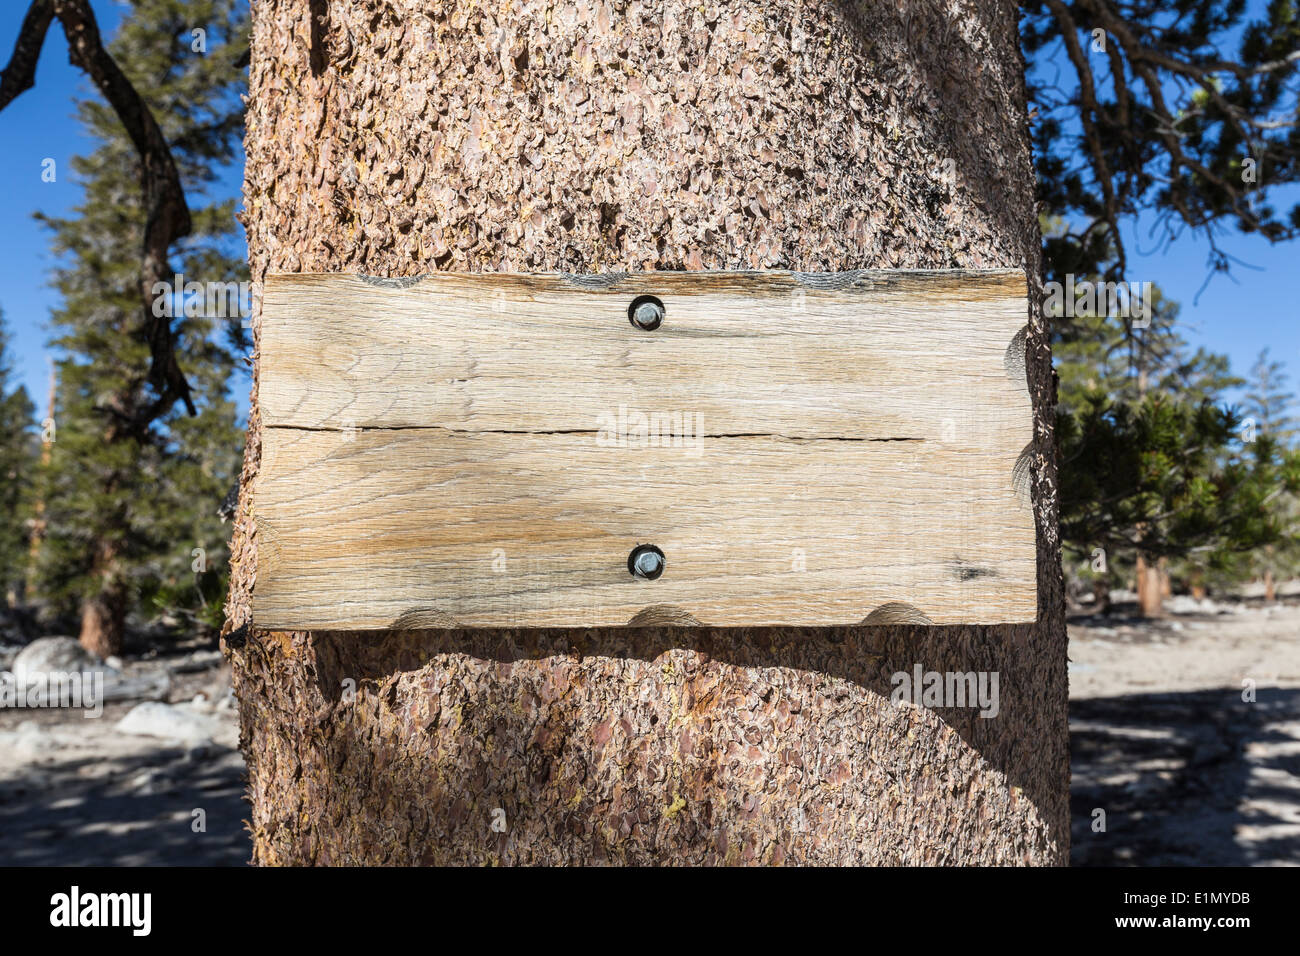 Blank Rustic Wood Sign On Pine Tree Stock Photo Alamy